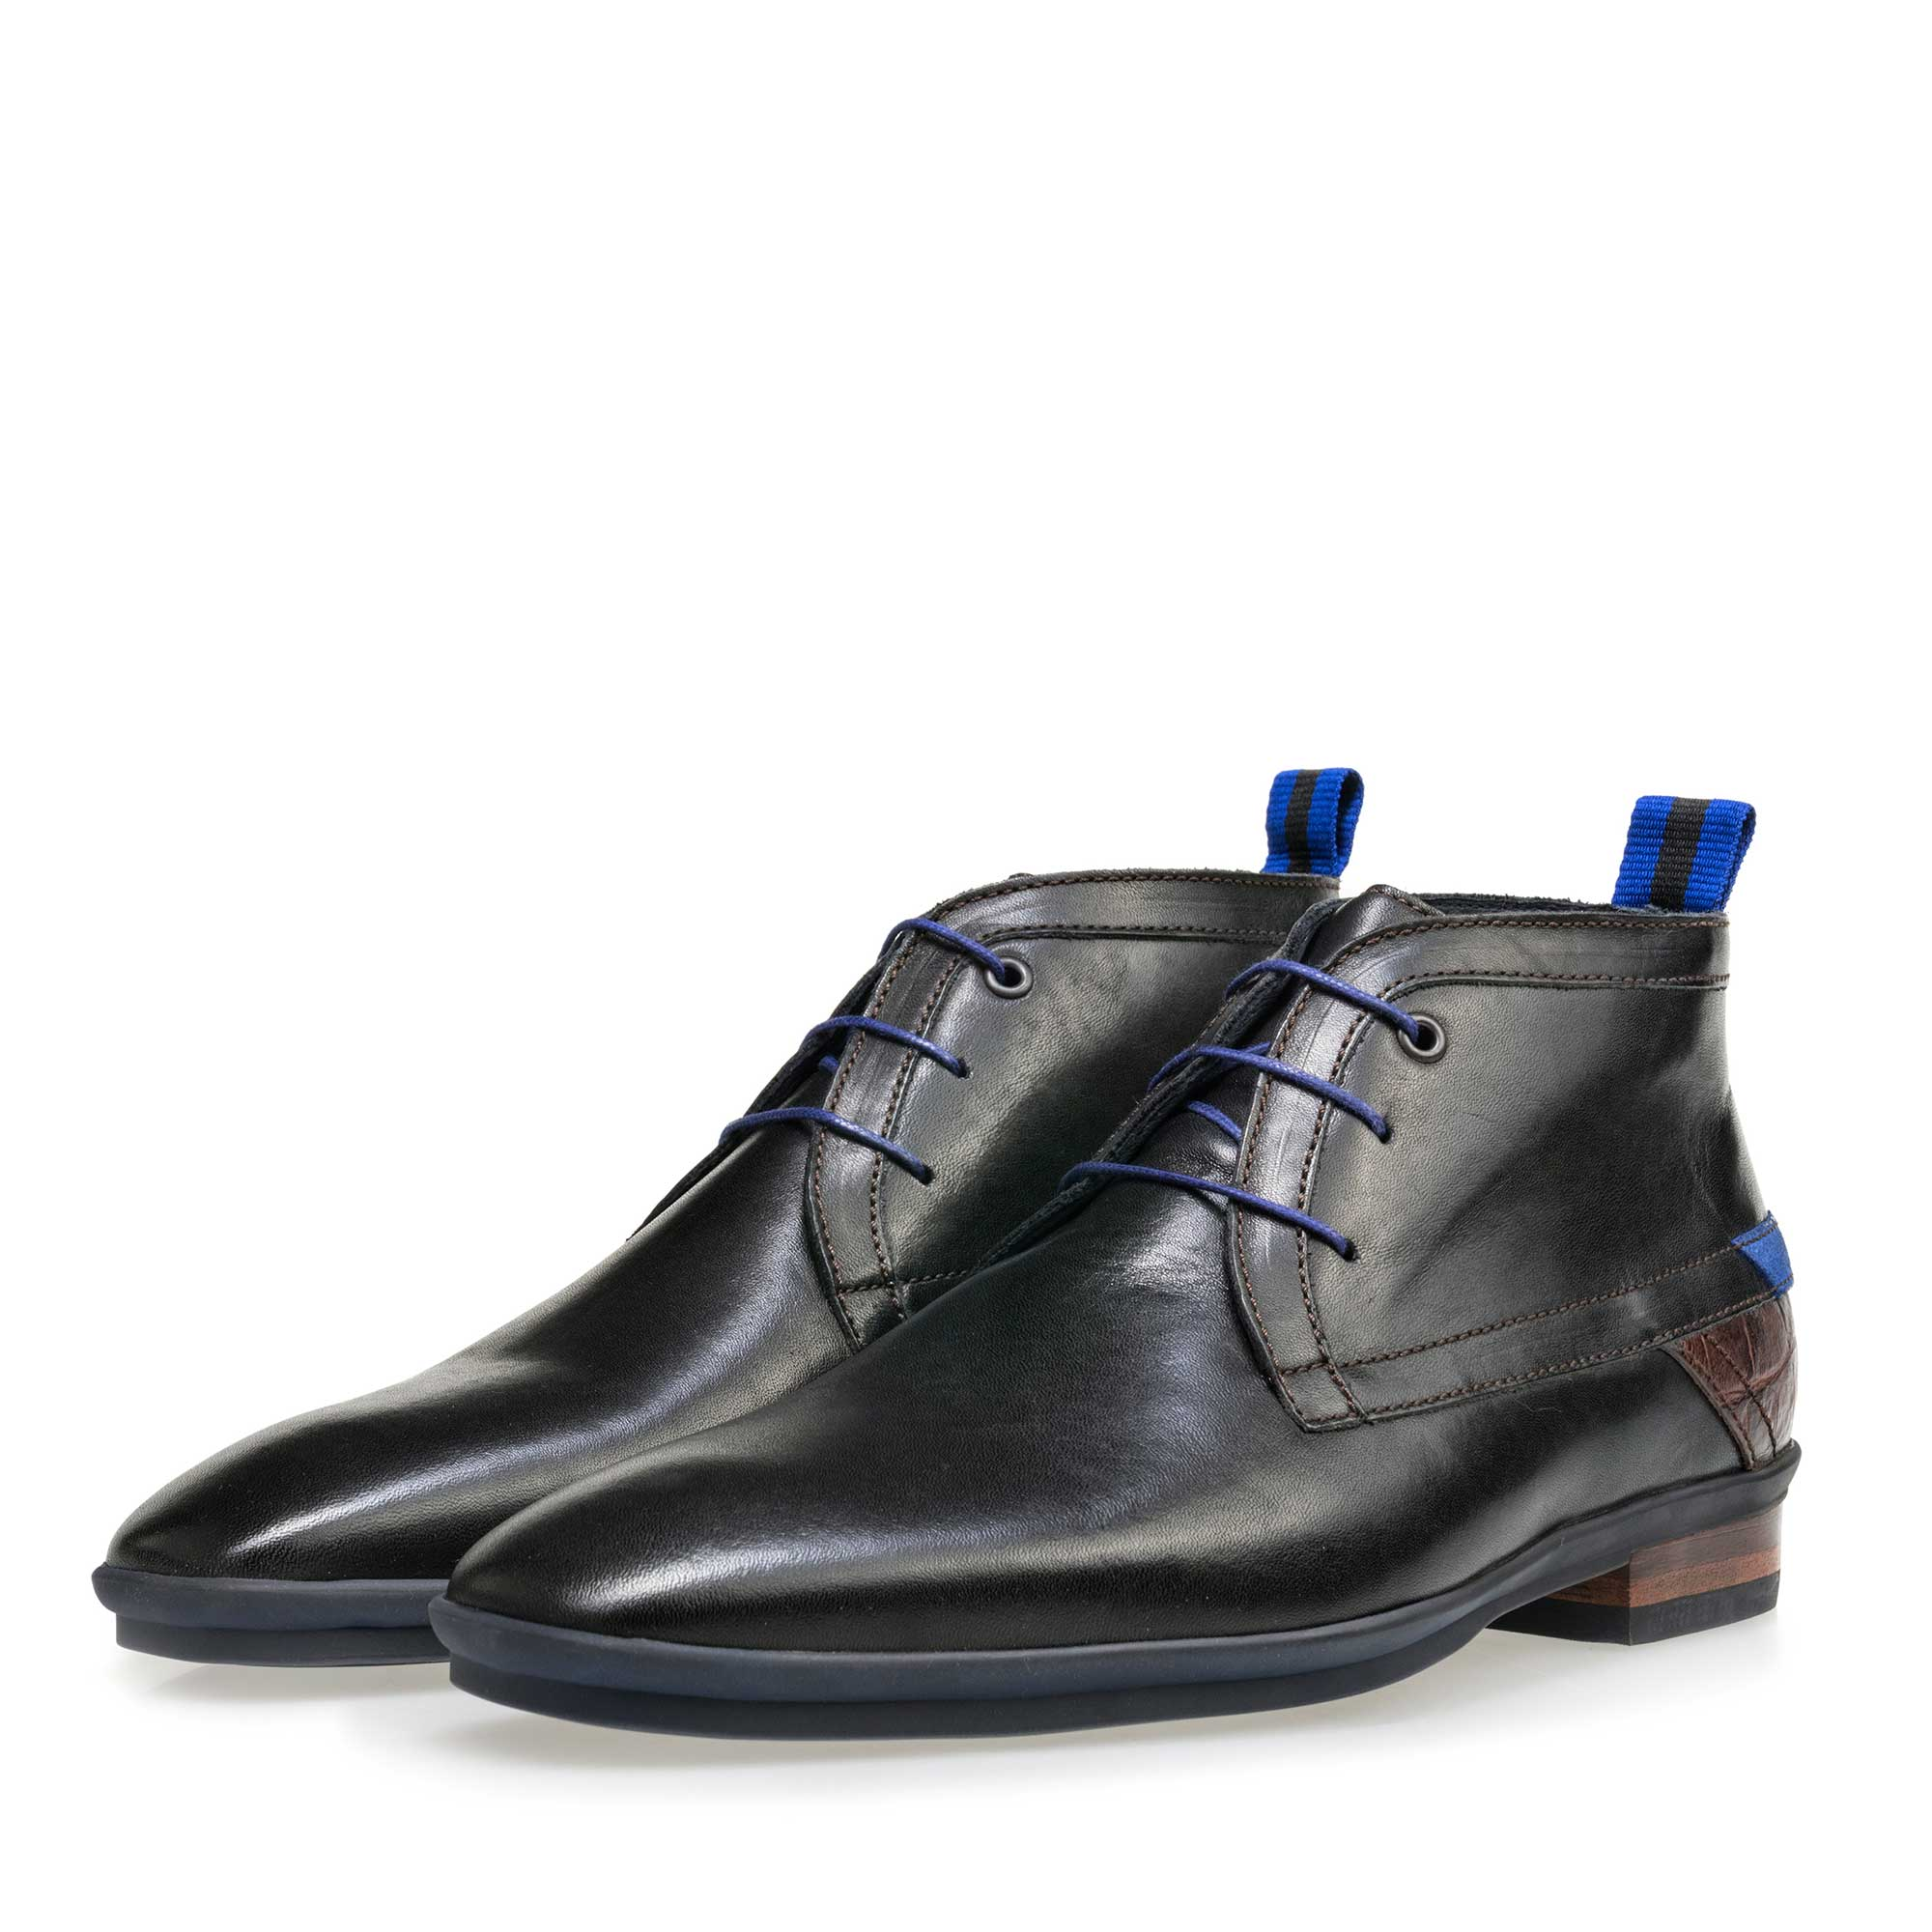 10334/30 - Floris van Bommel black leather men's lace-up boot